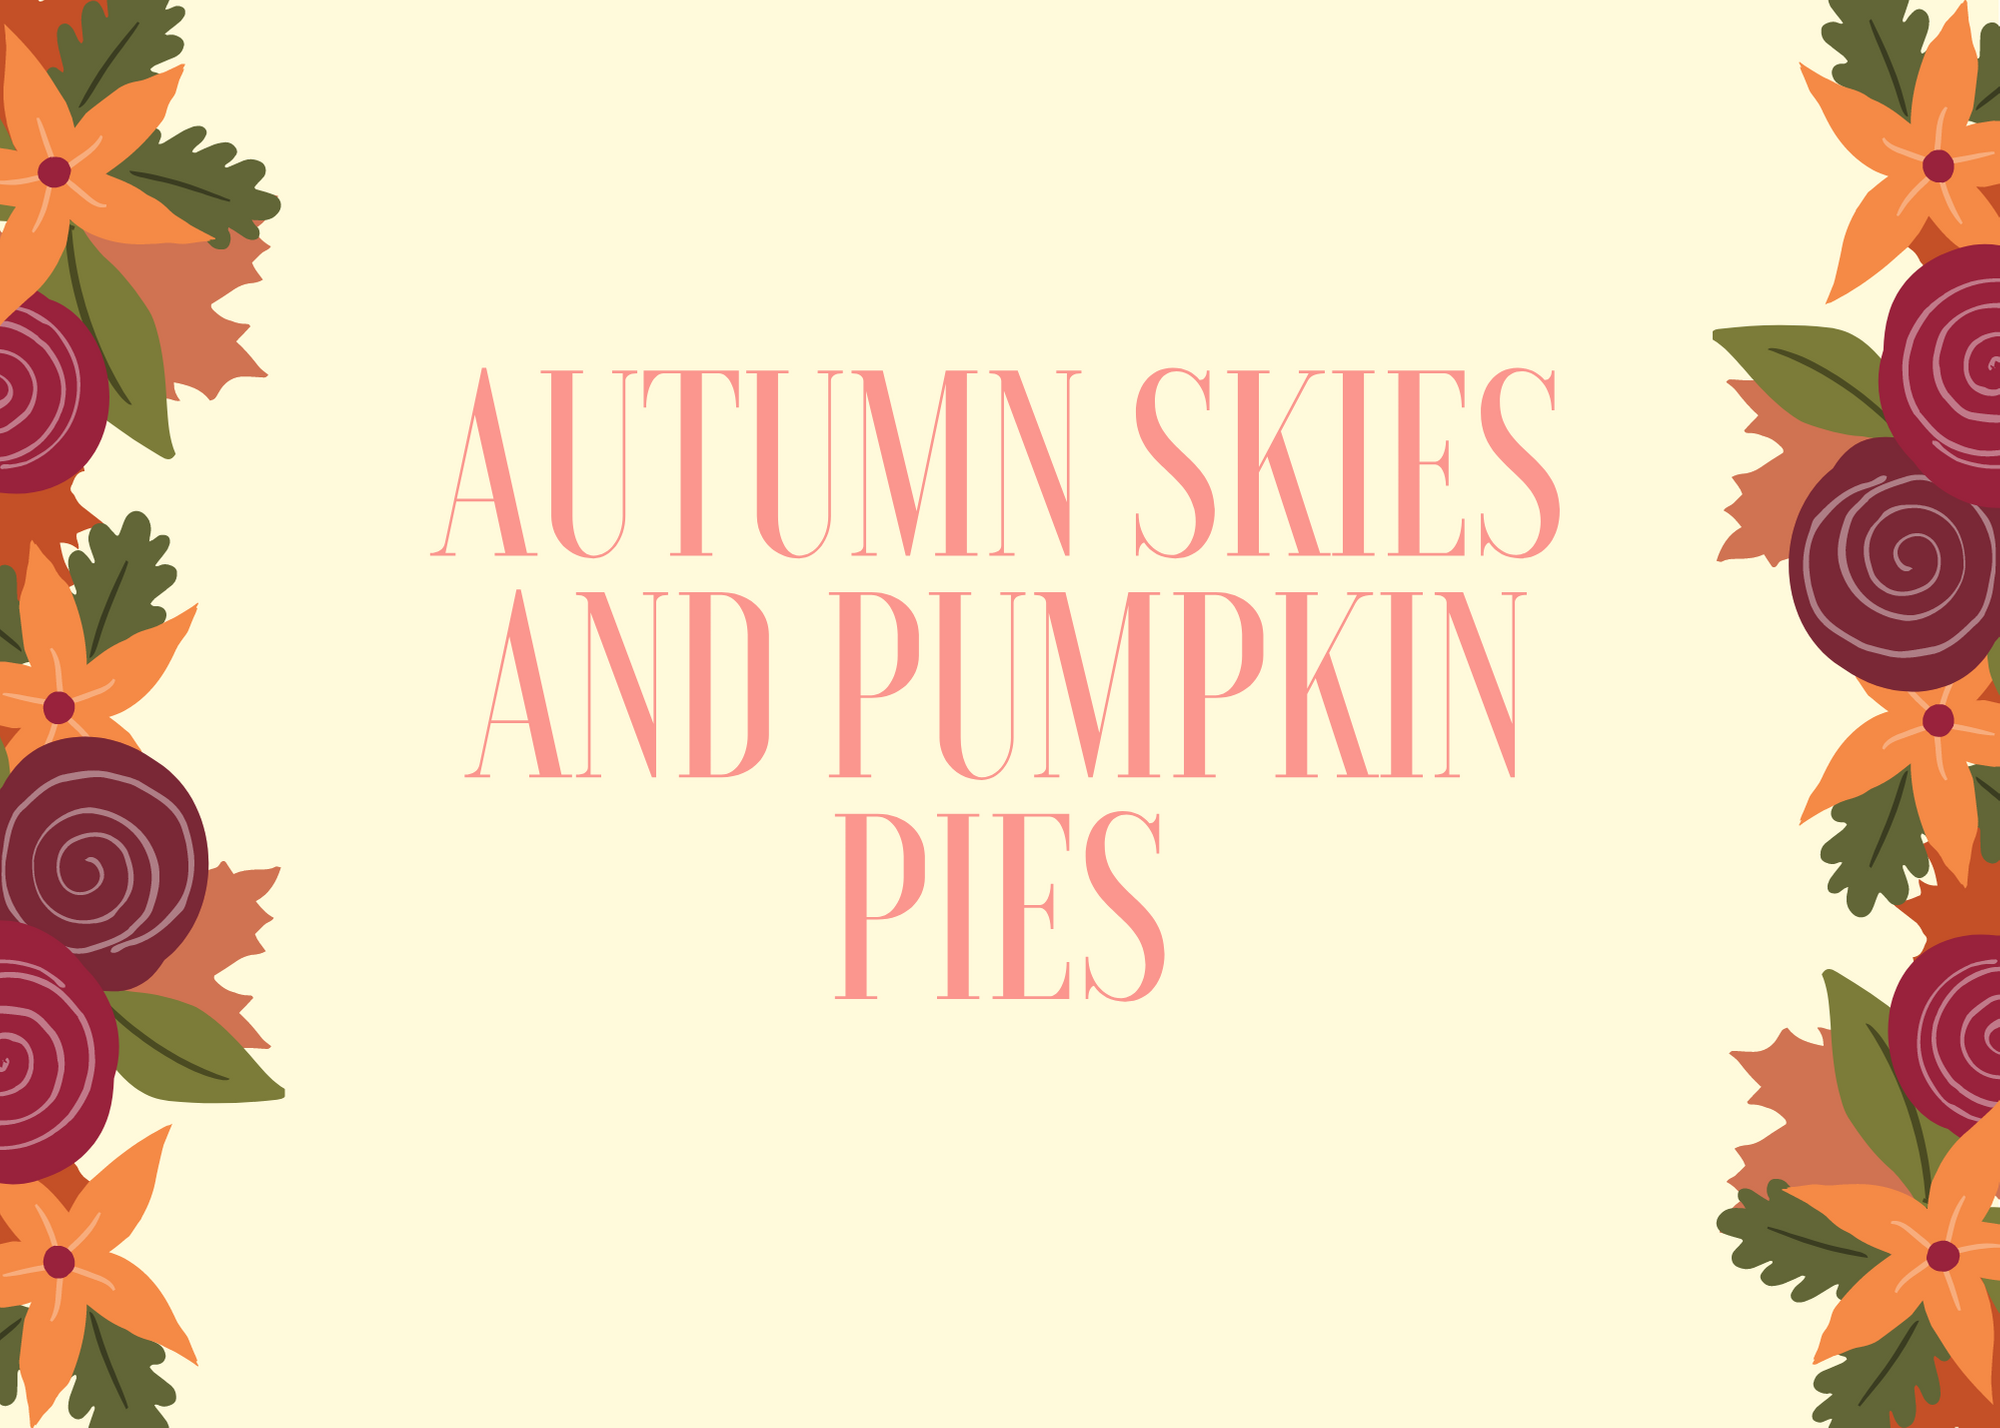 Funny Fall Instagram Caption About Autumn Skies